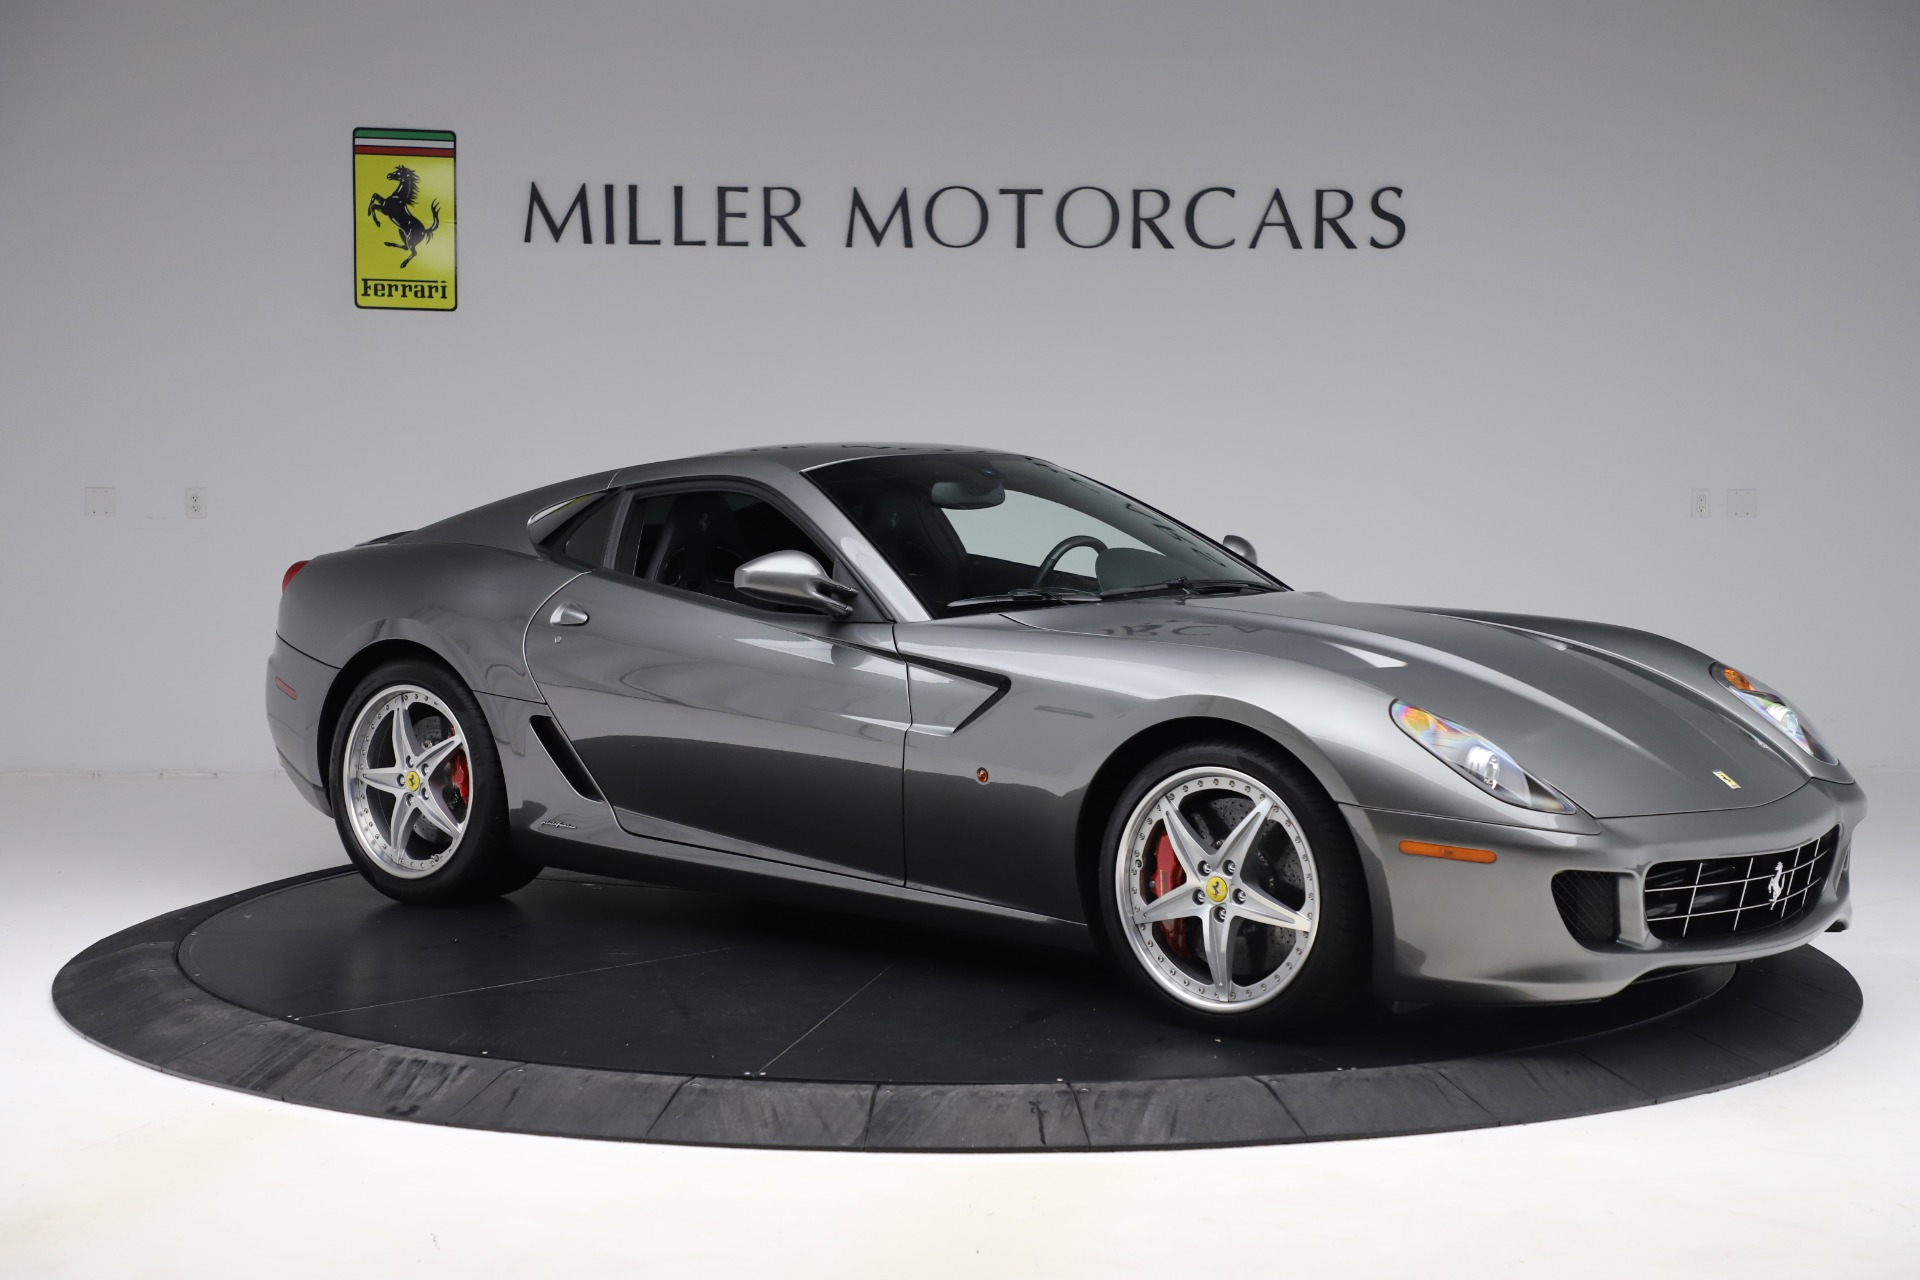 Used 2010 Ferrari 599 GTB Fiorano HGTE For Sale In Westport, CT 3544_p10